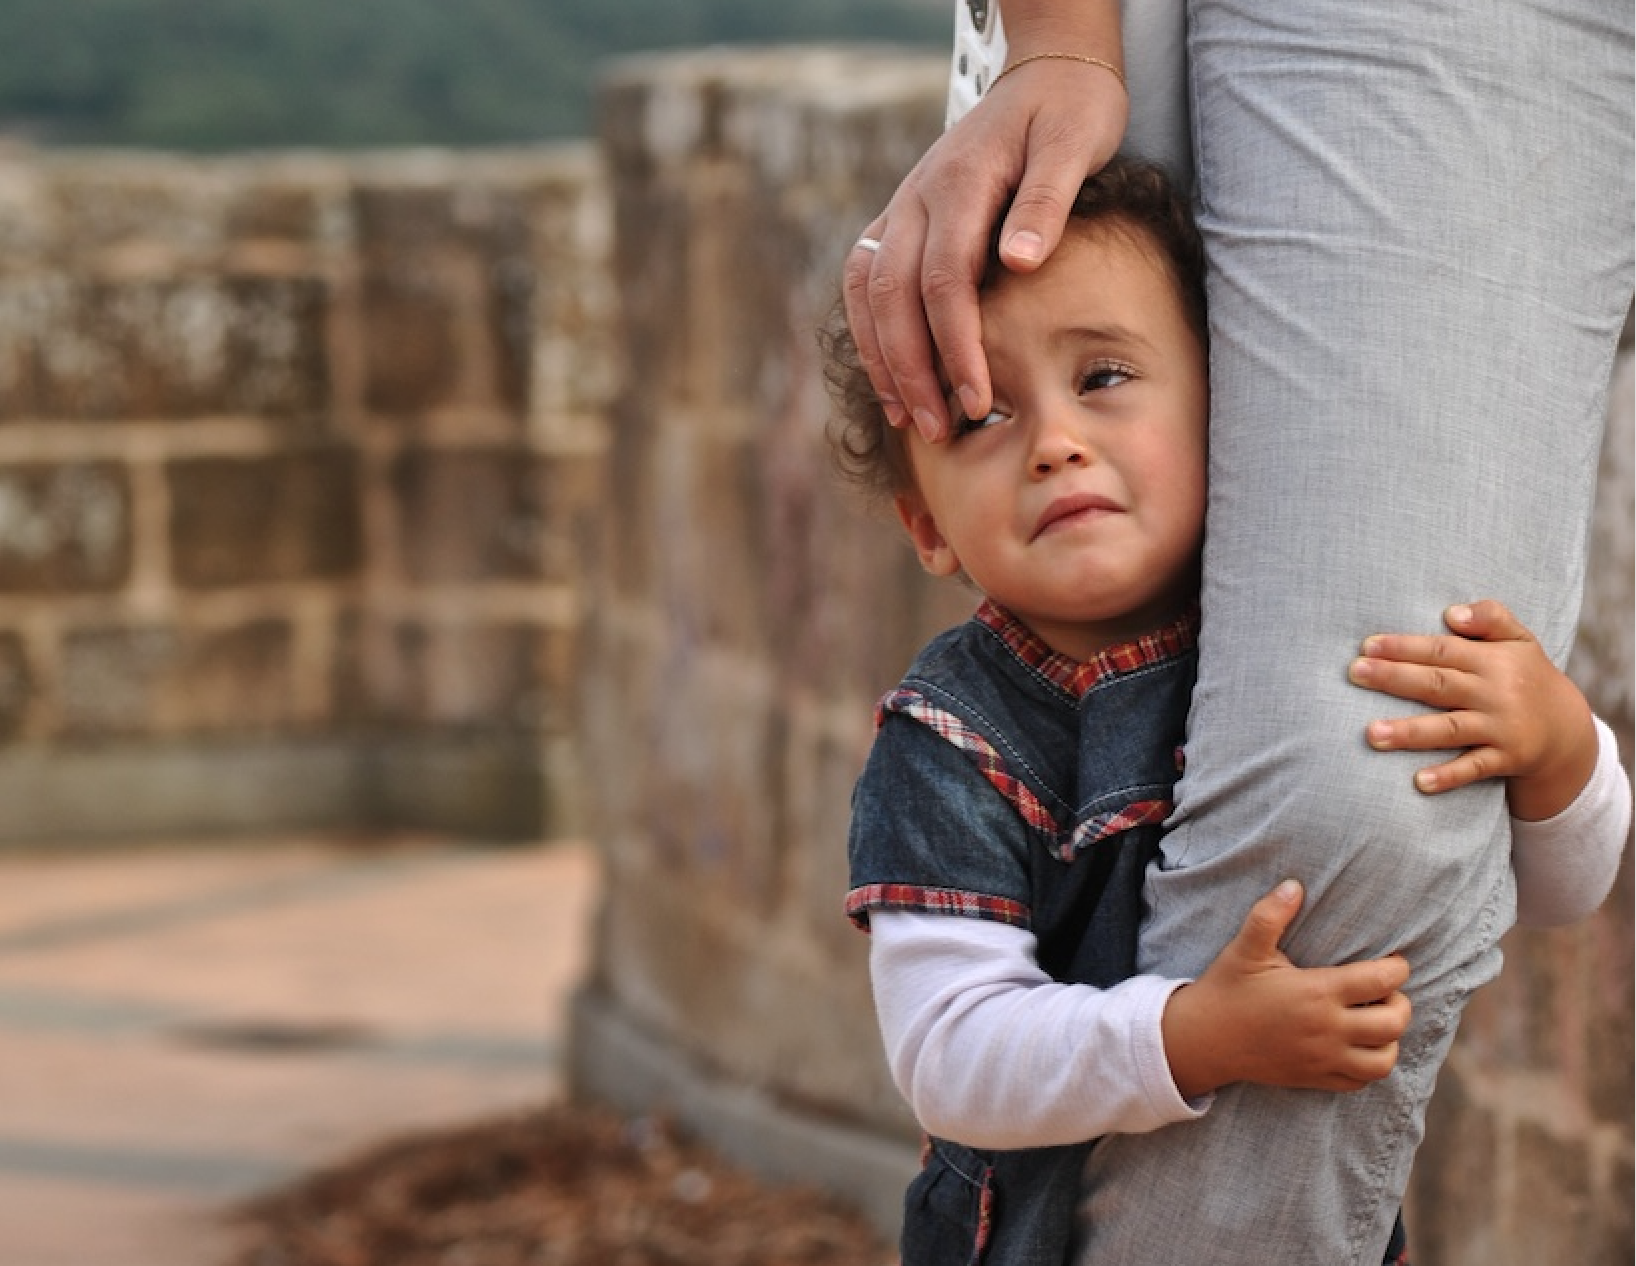 The Biological Scars of Separation